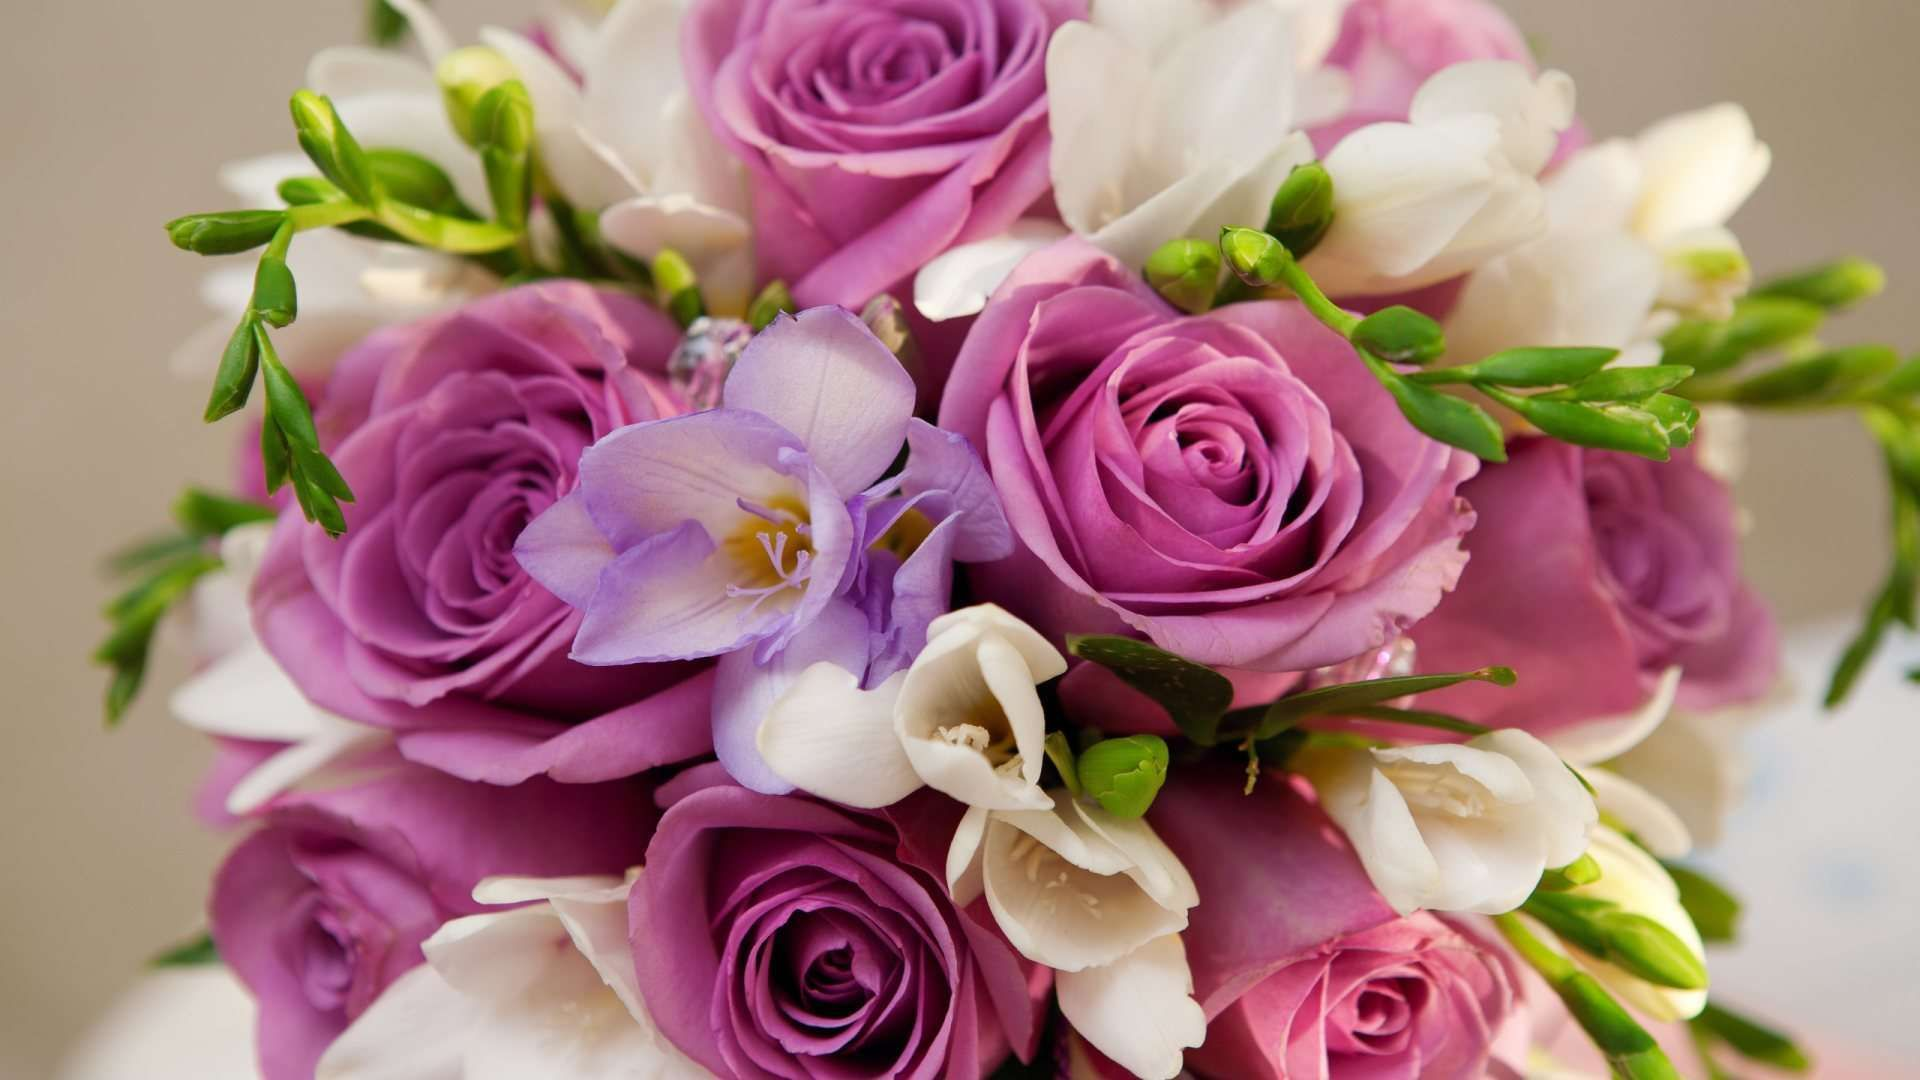 Beautiful Purple and White Flowers Bouquet 1080p HD